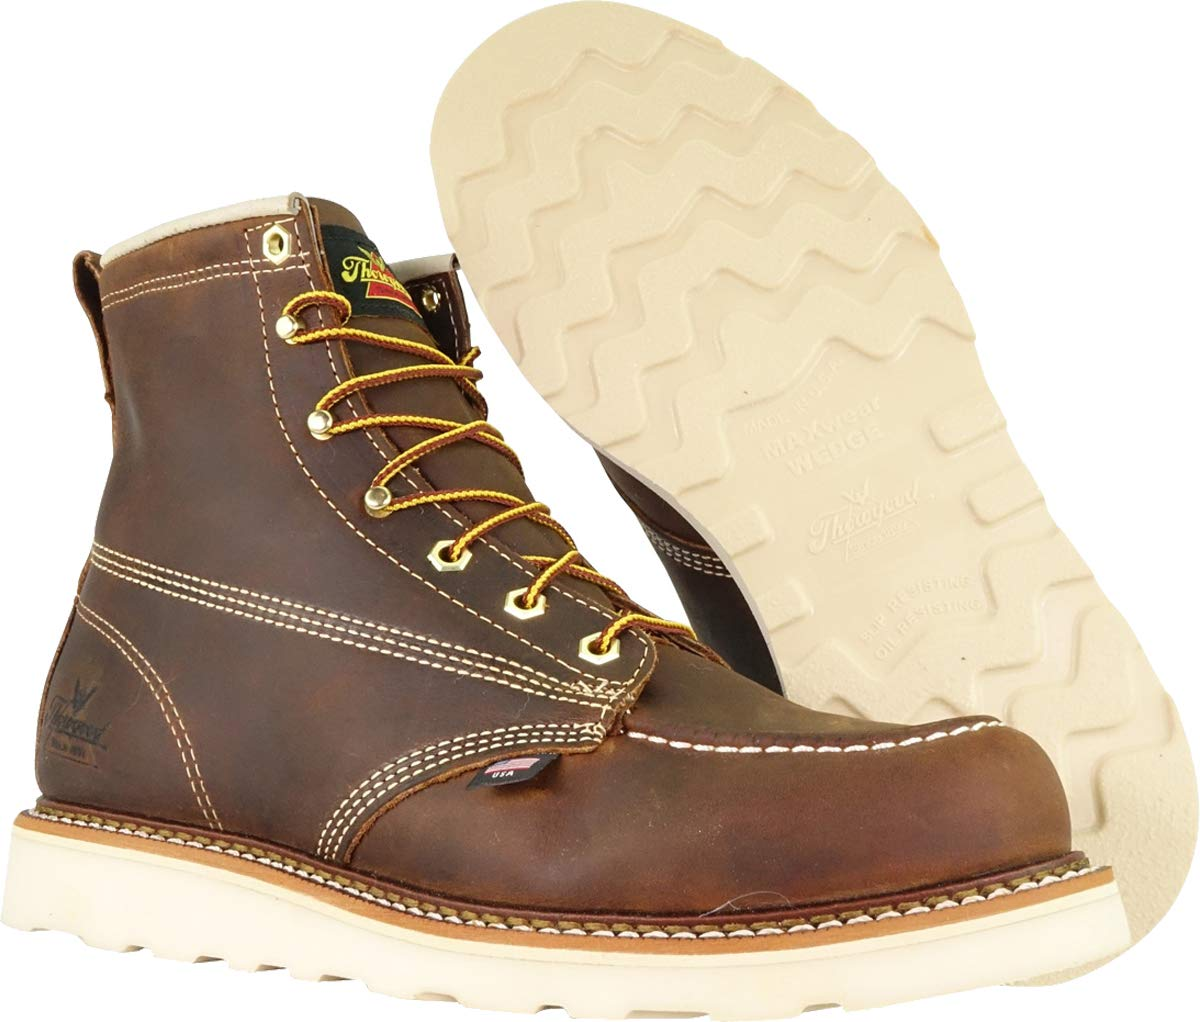 Thorogood-American-Heritage-Men-039-s-6-034-Moc-Toe-Max-Wedge-Non-Safety-Boots thumbnail 29